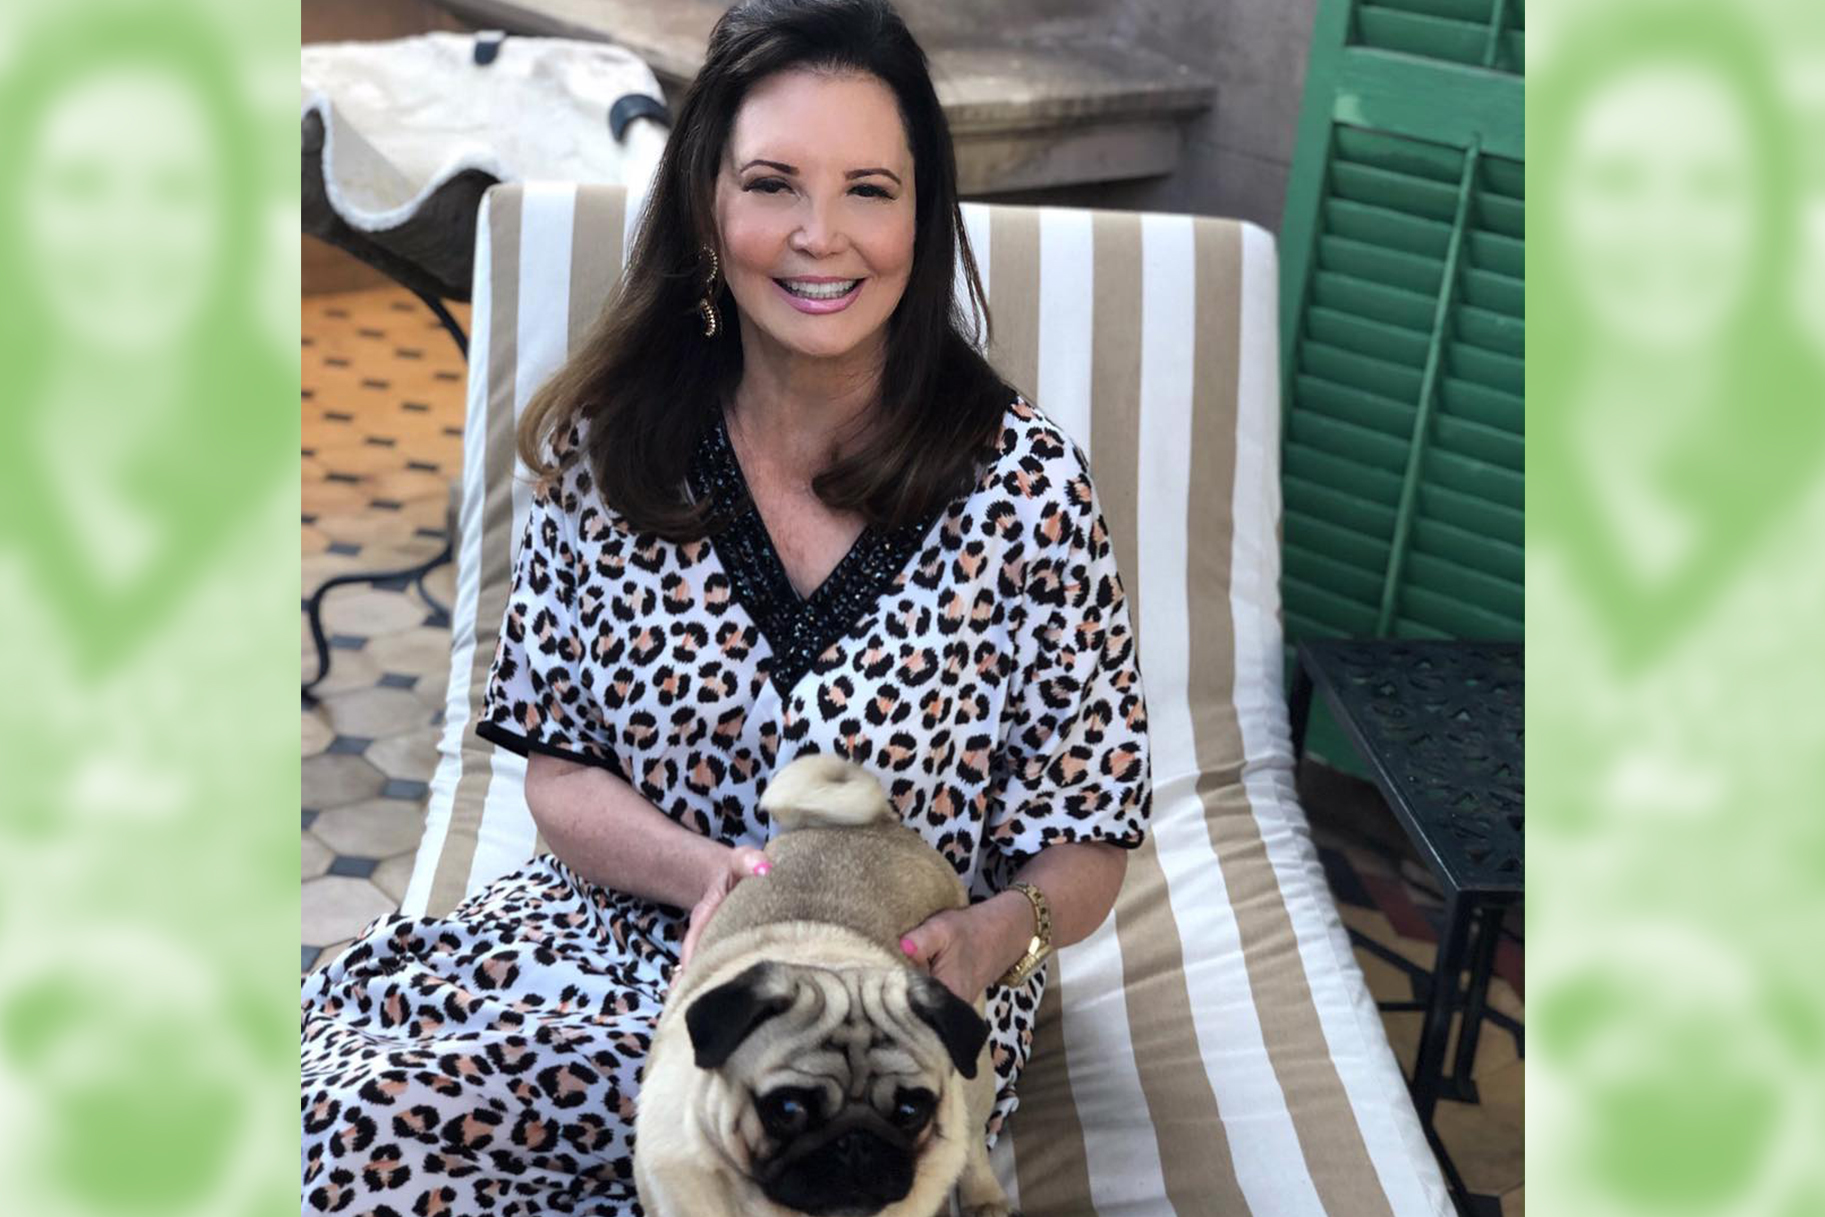 Patricia Altschul and Chauncey Pug